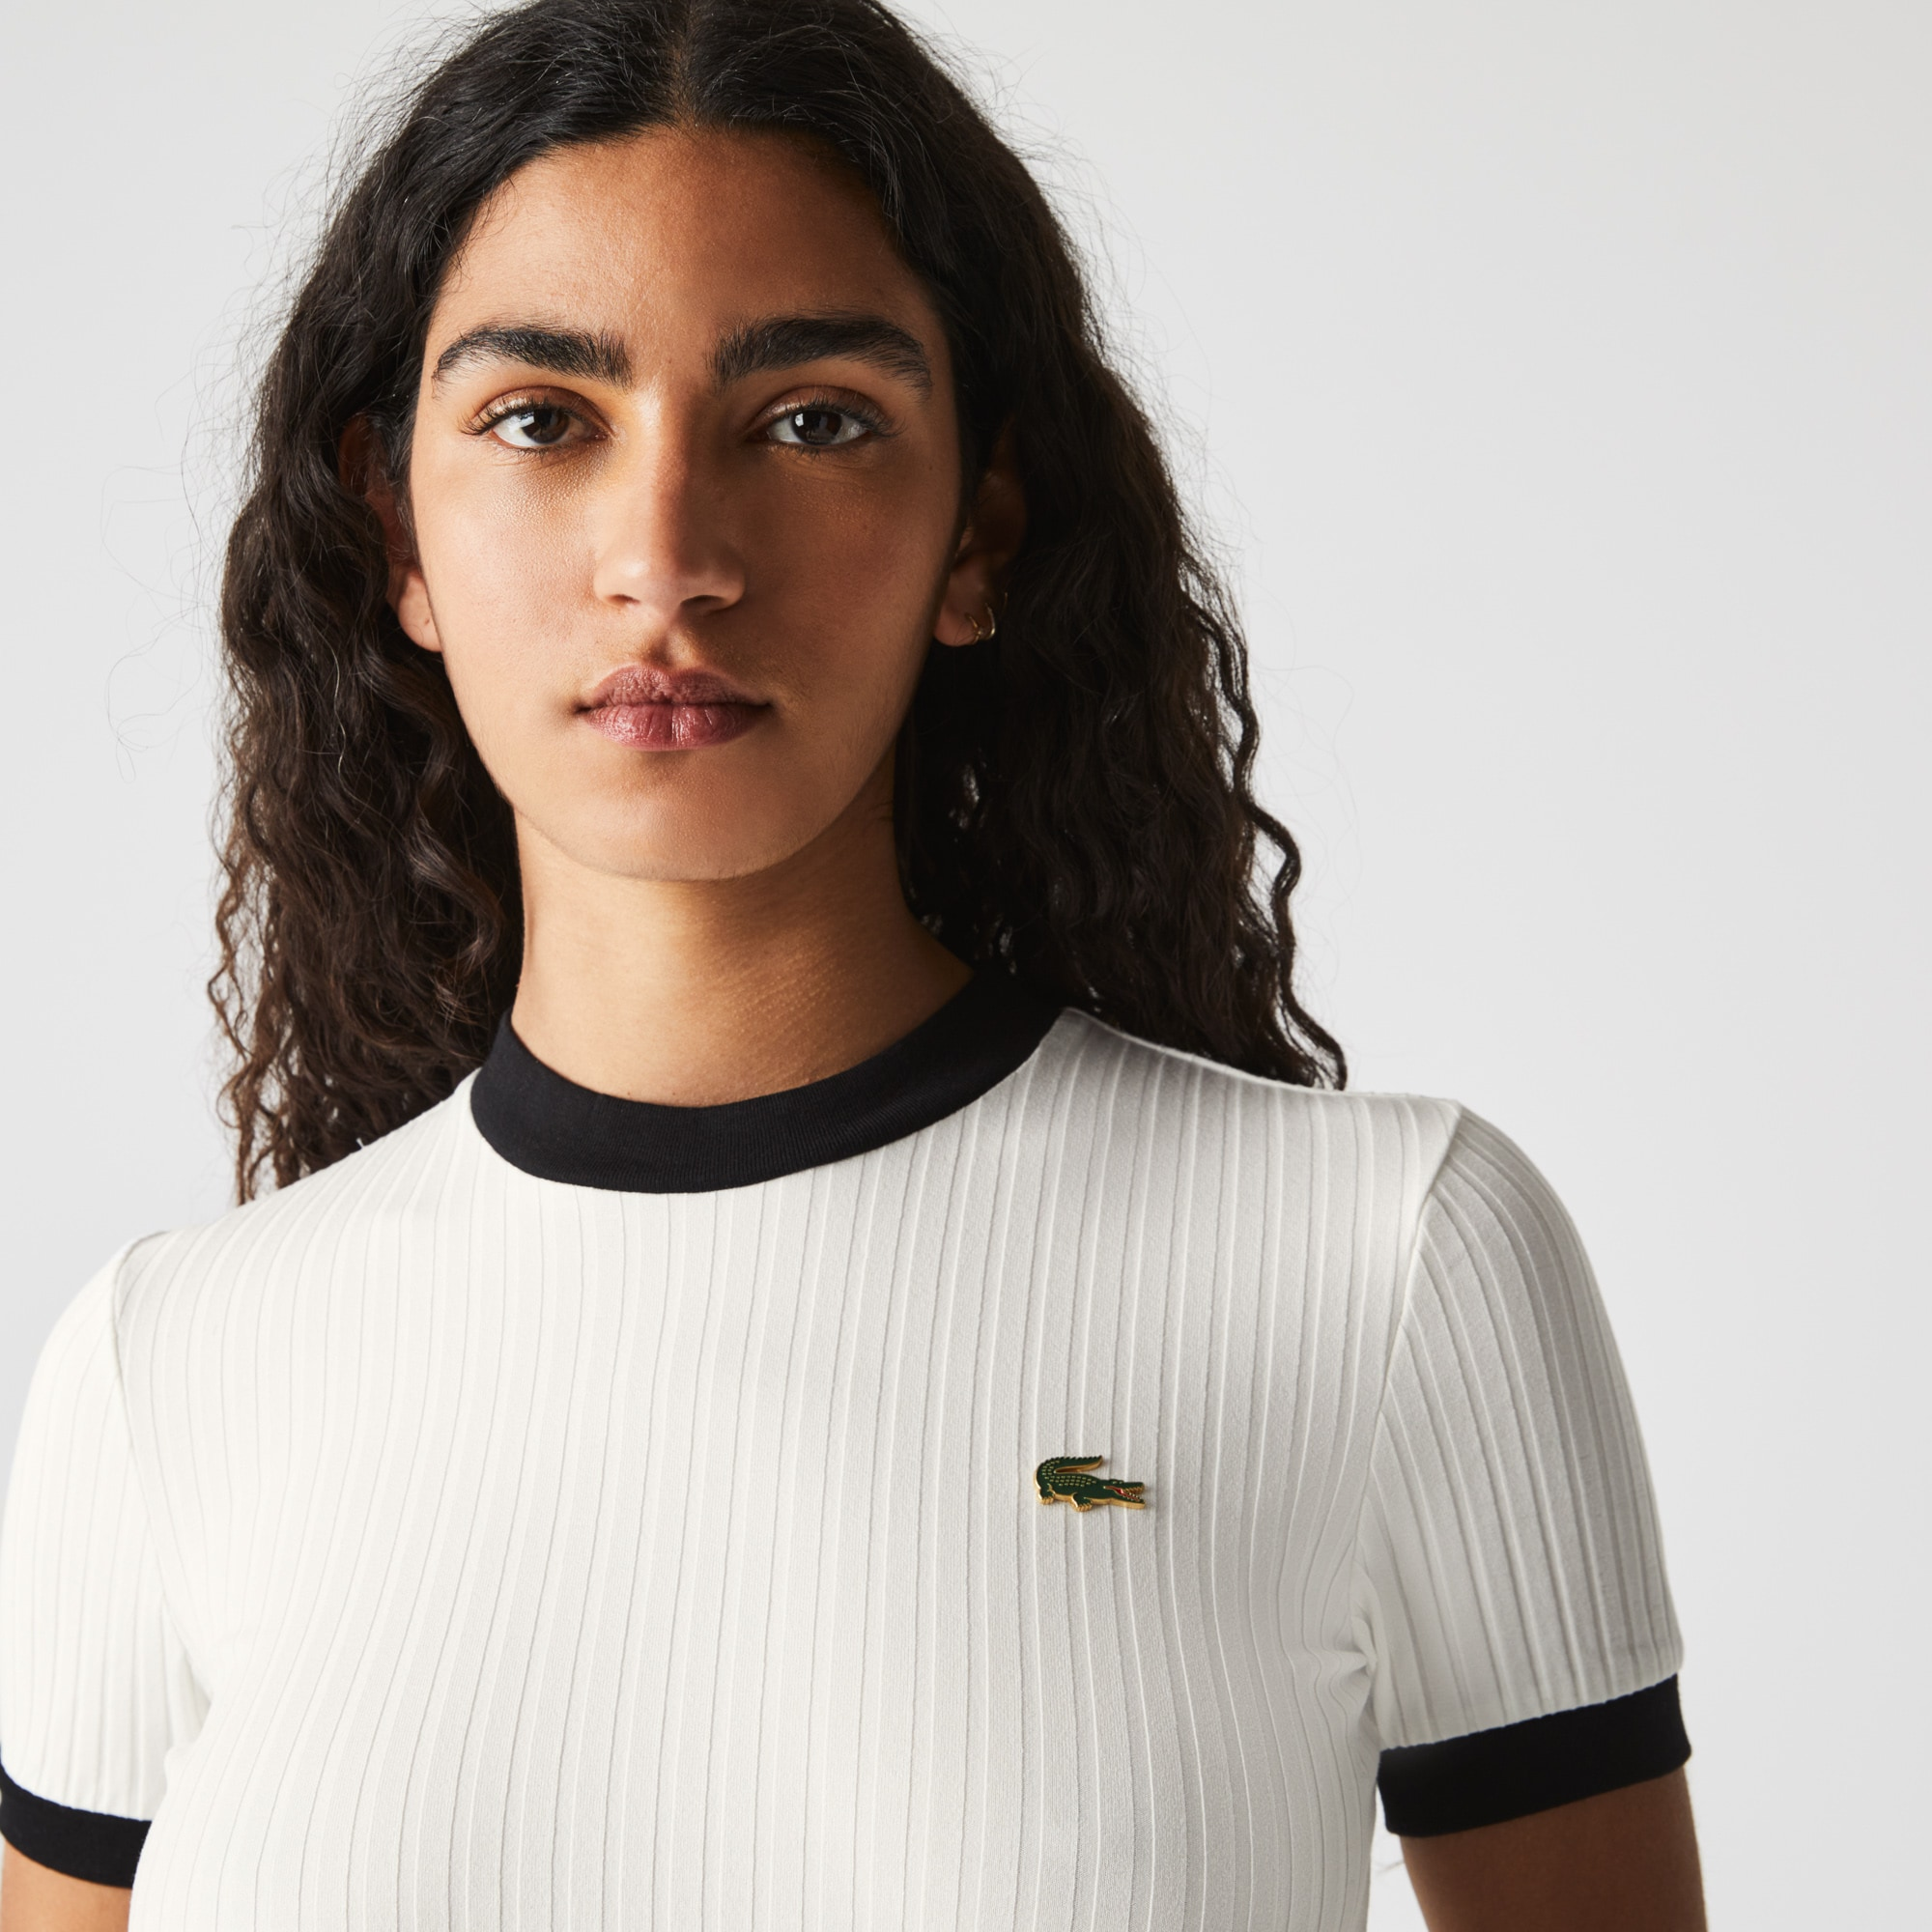 Lacoste Women's LIVE Crew Neck Contrast Accent Ribbed T-shirt